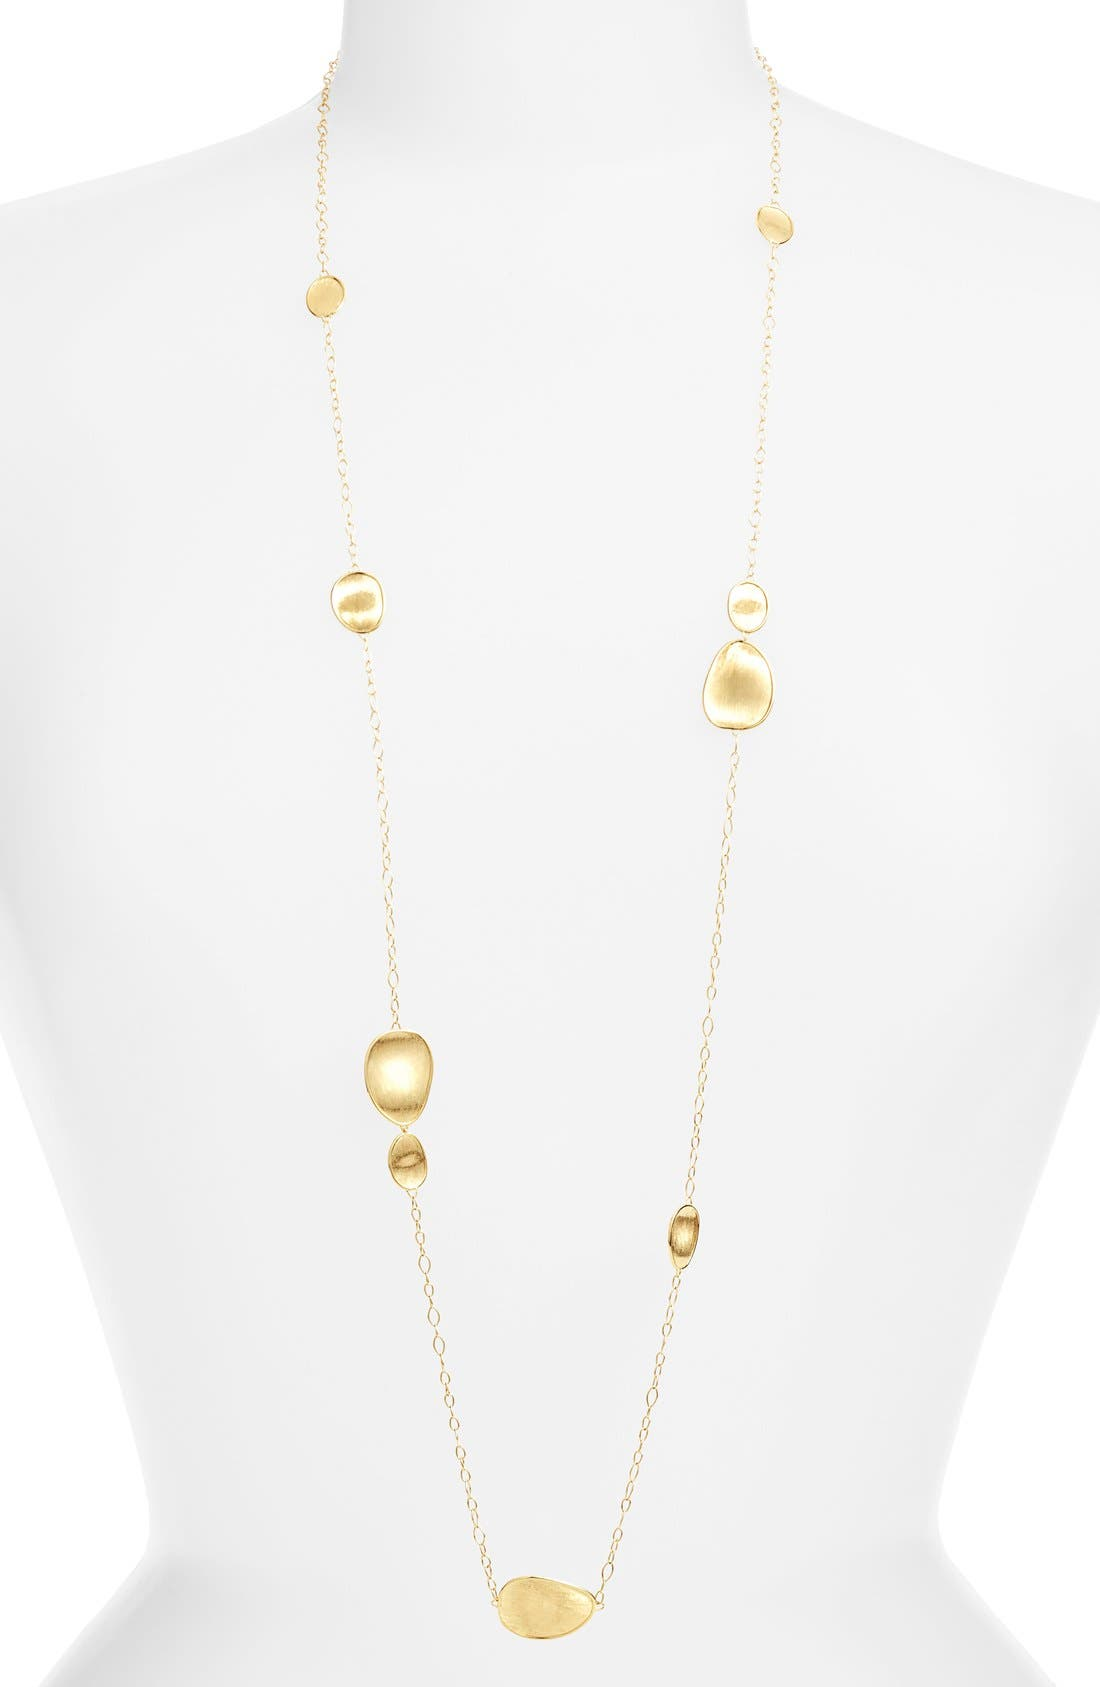 Main Image - Marco Bicego 'Lunaria' Long Station Necklace